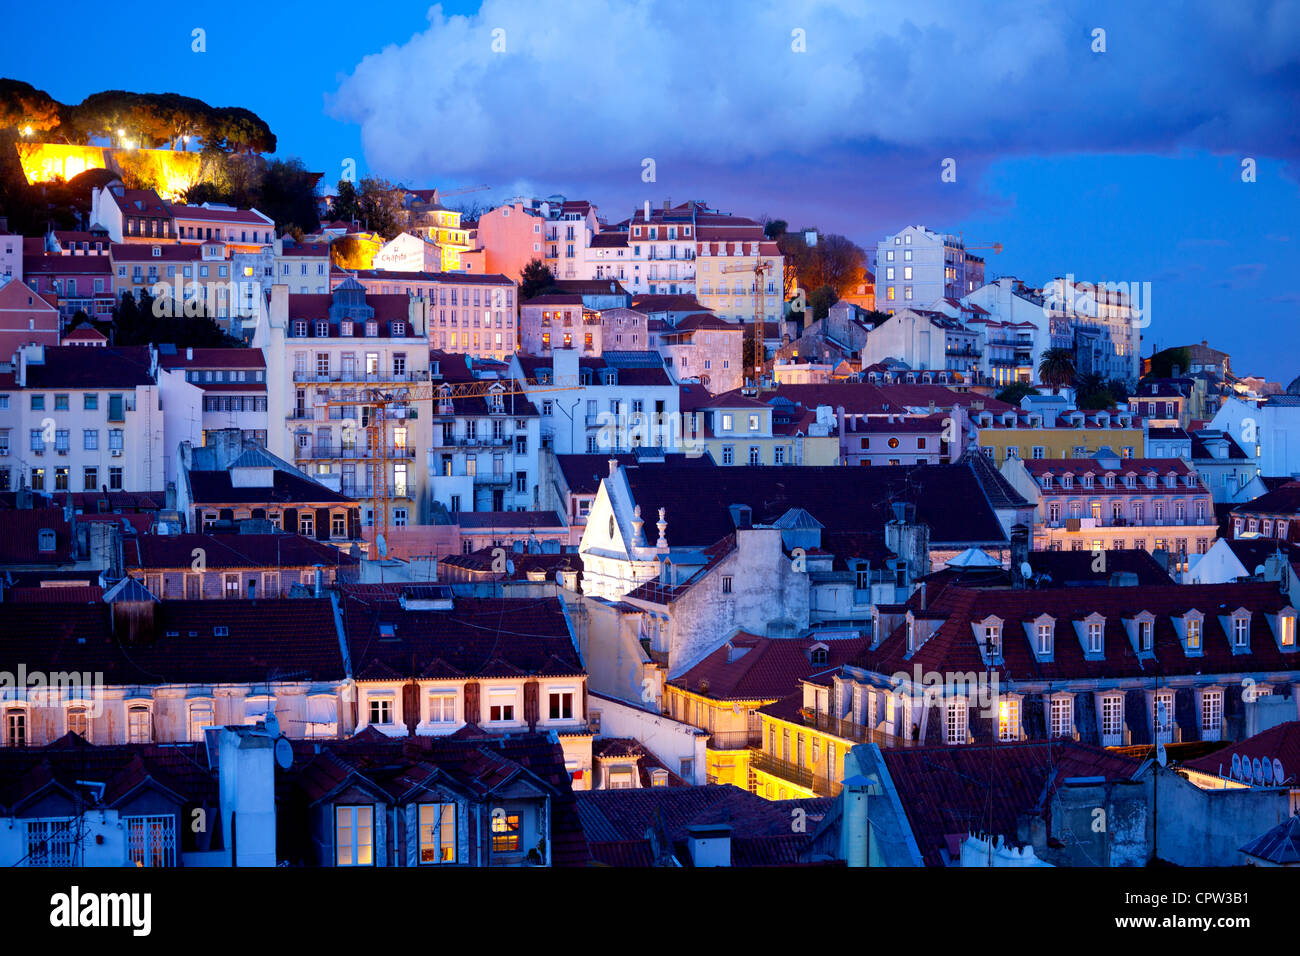 Saint George's Castle et un panorama de Lisbonne, Portugal Photo Stock